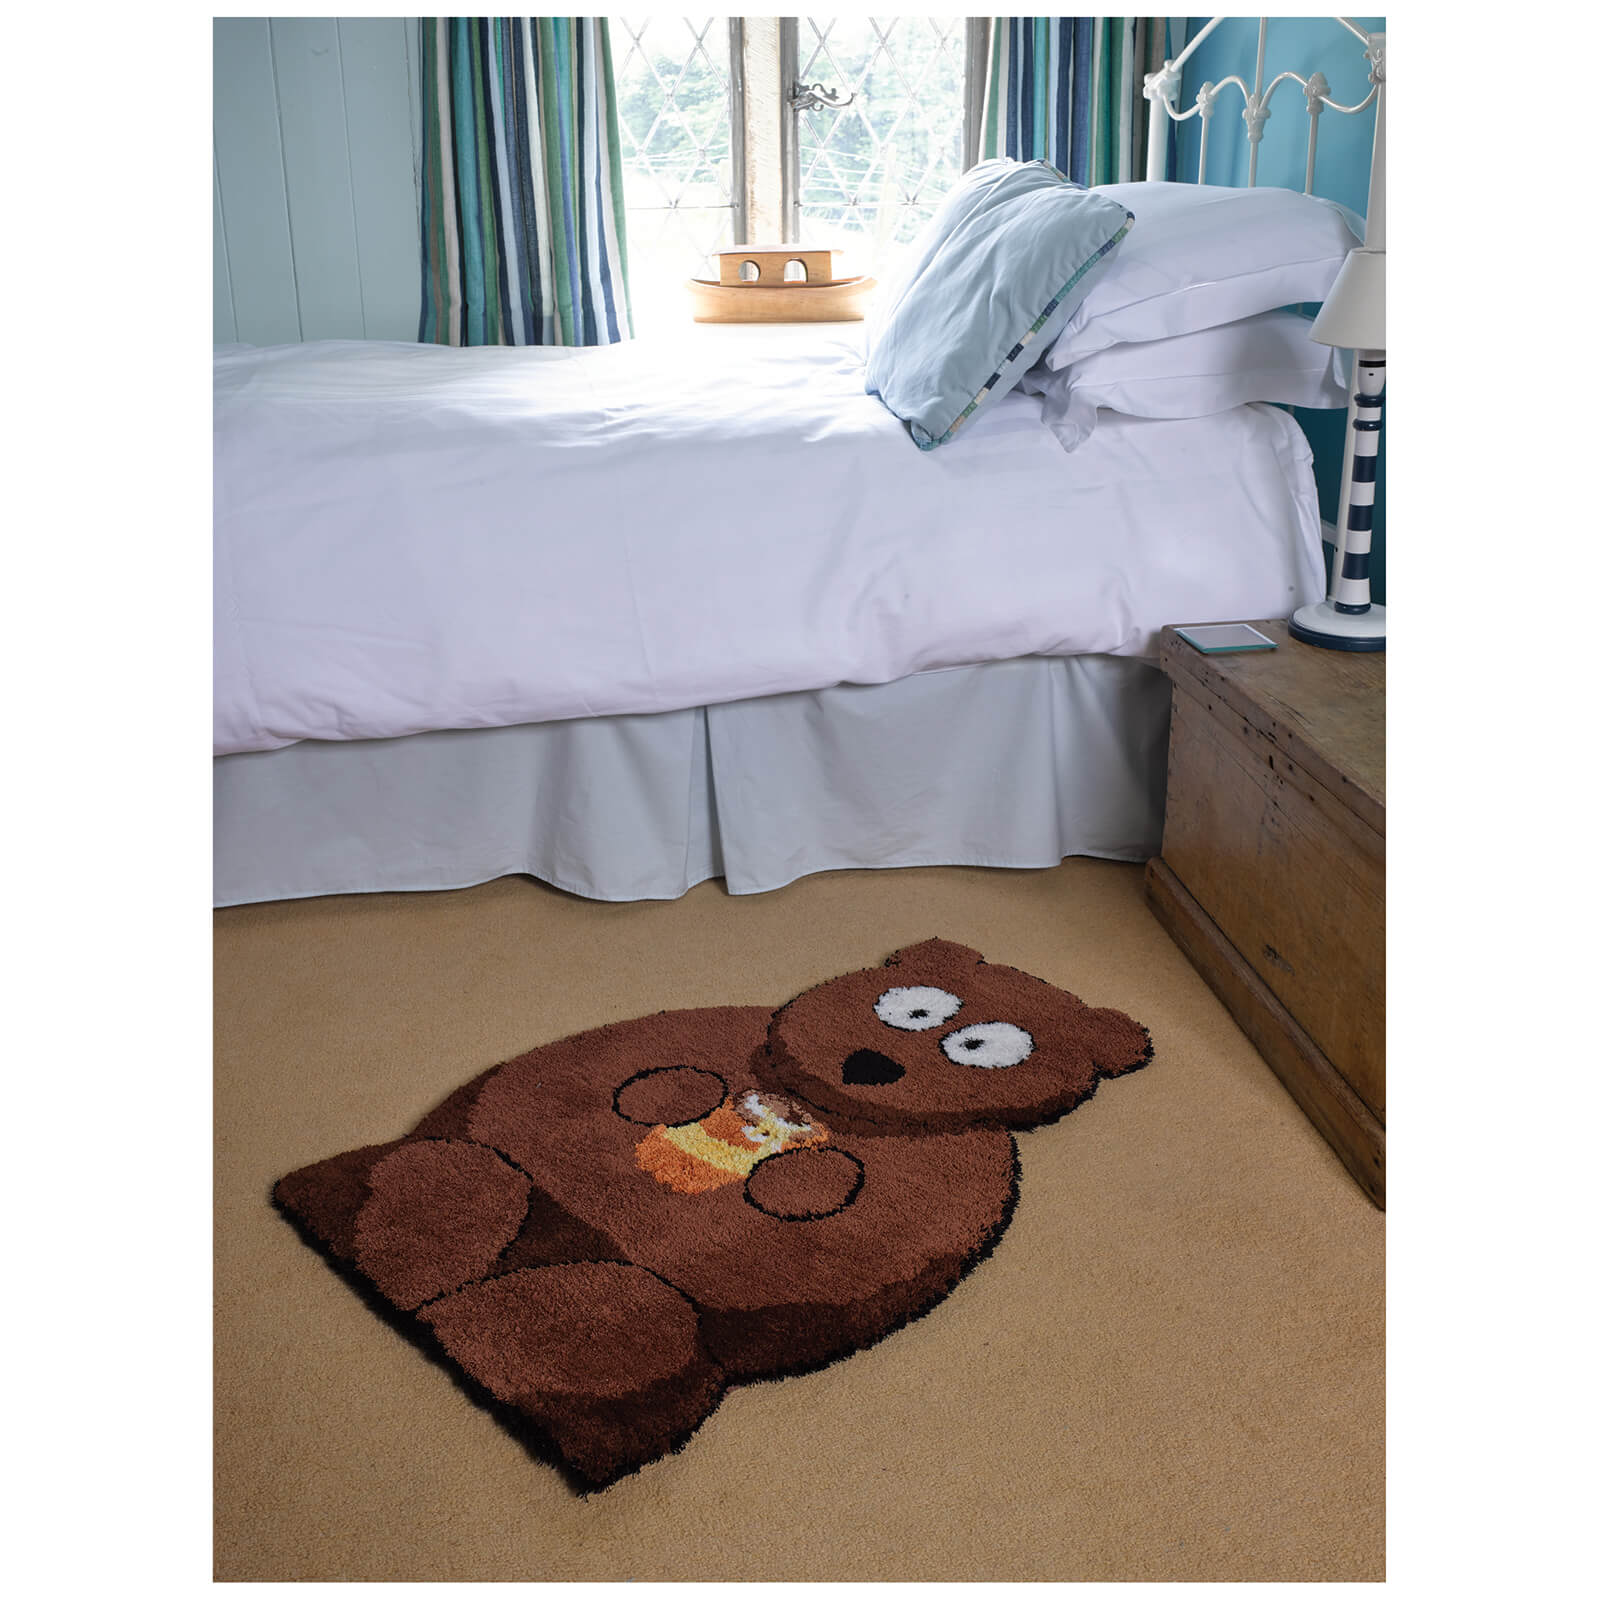 Flair Plush Animals Rug - Bertie Bear Brown (60X90)